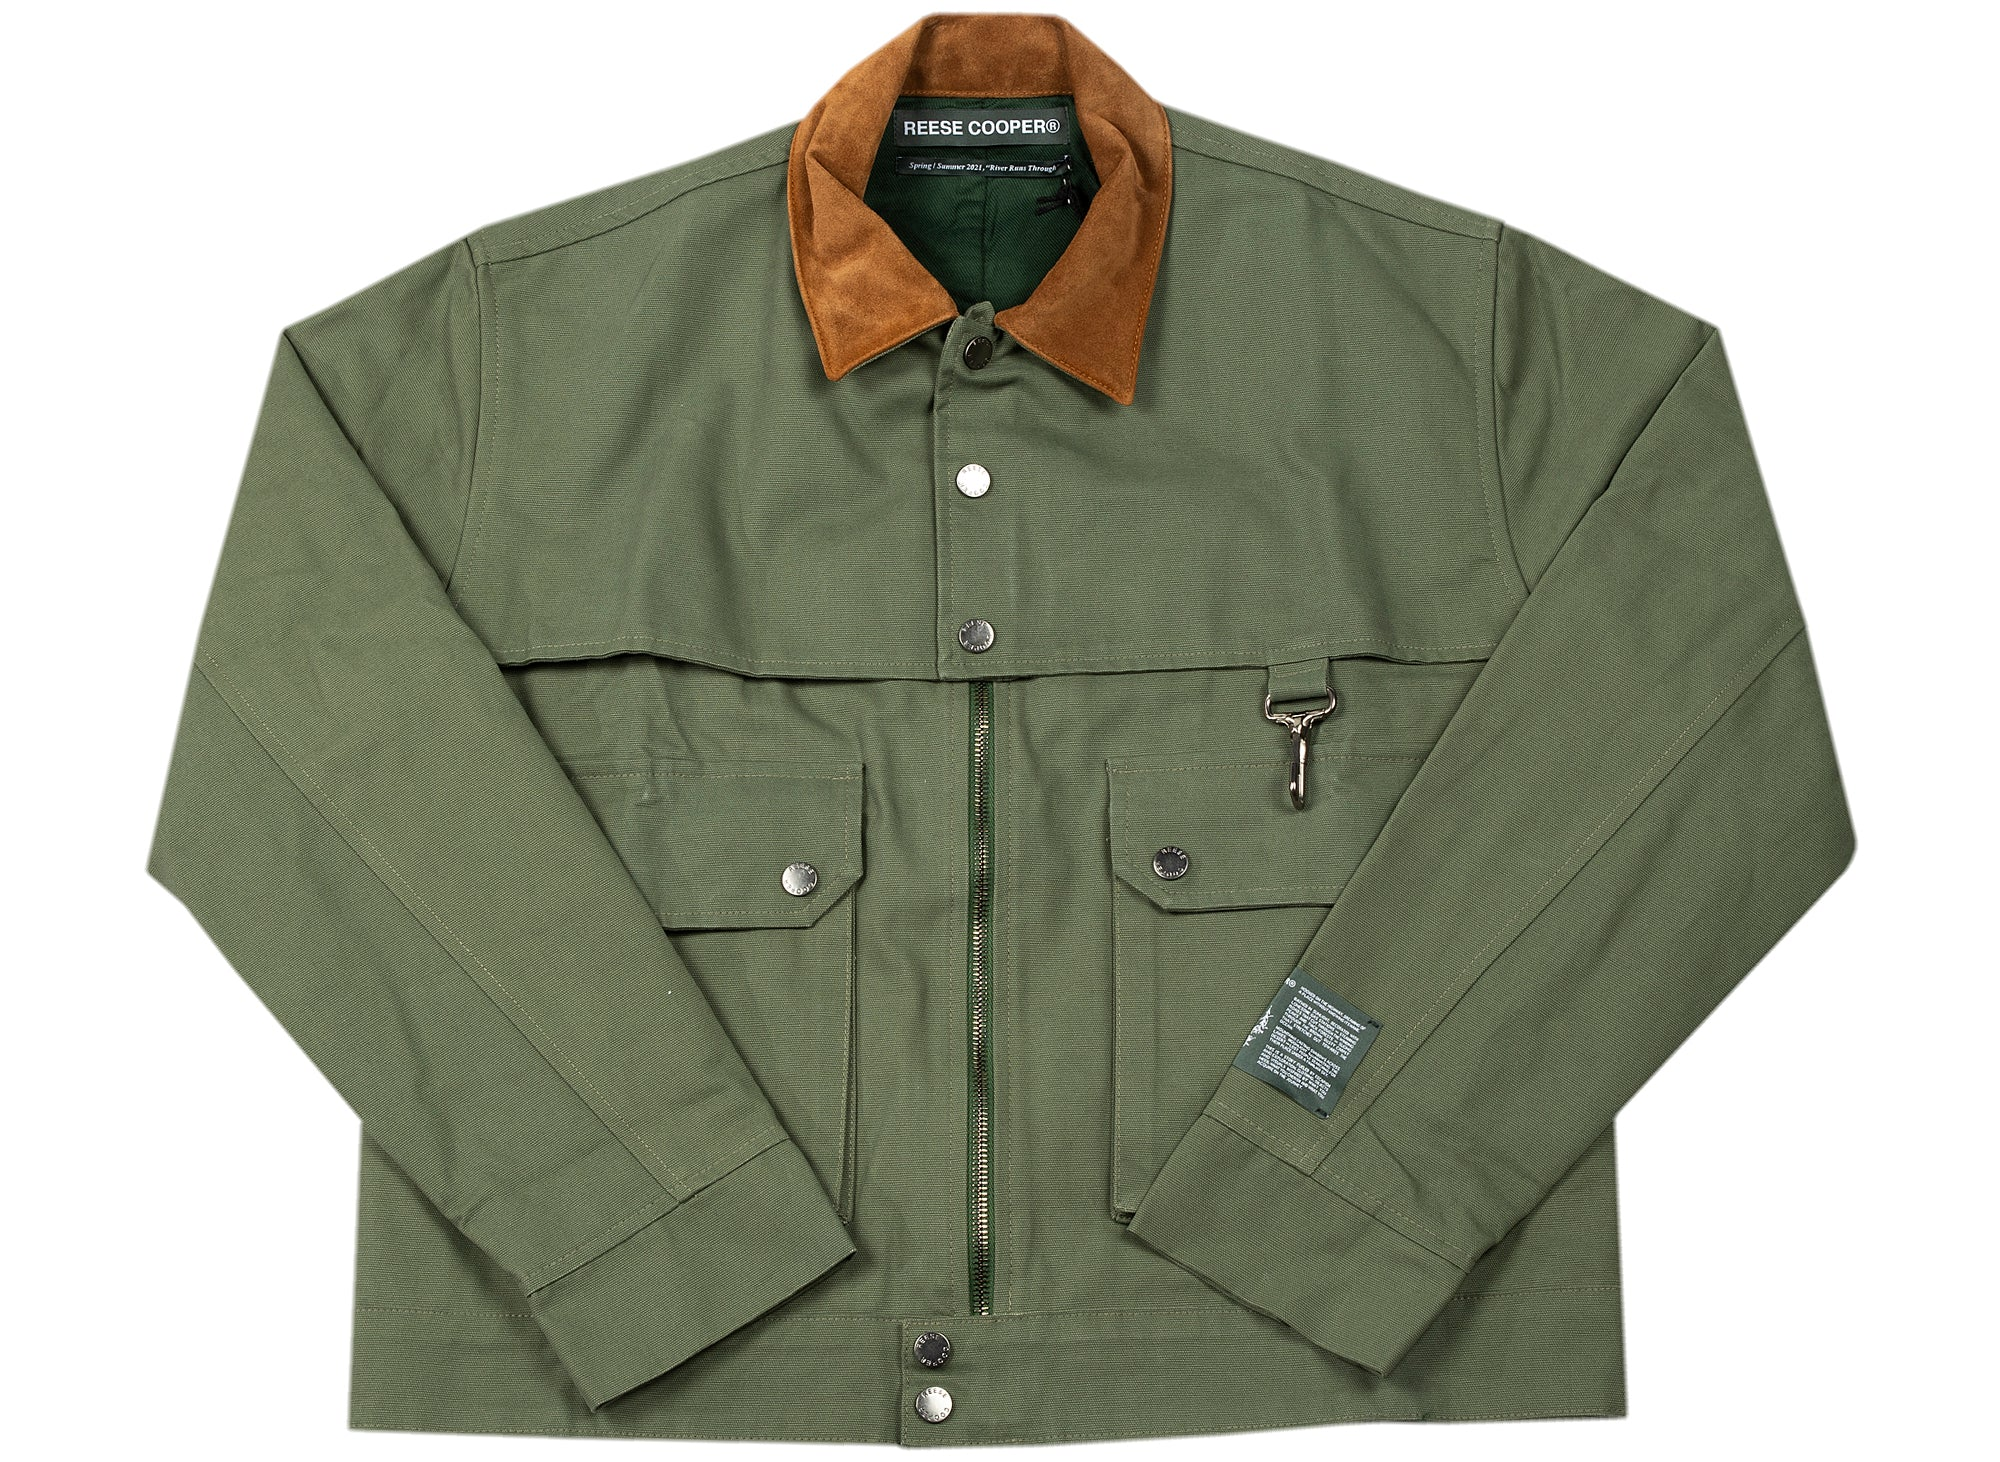 Reese Cooper Brushed Cotton Canvas Work Jacket xld